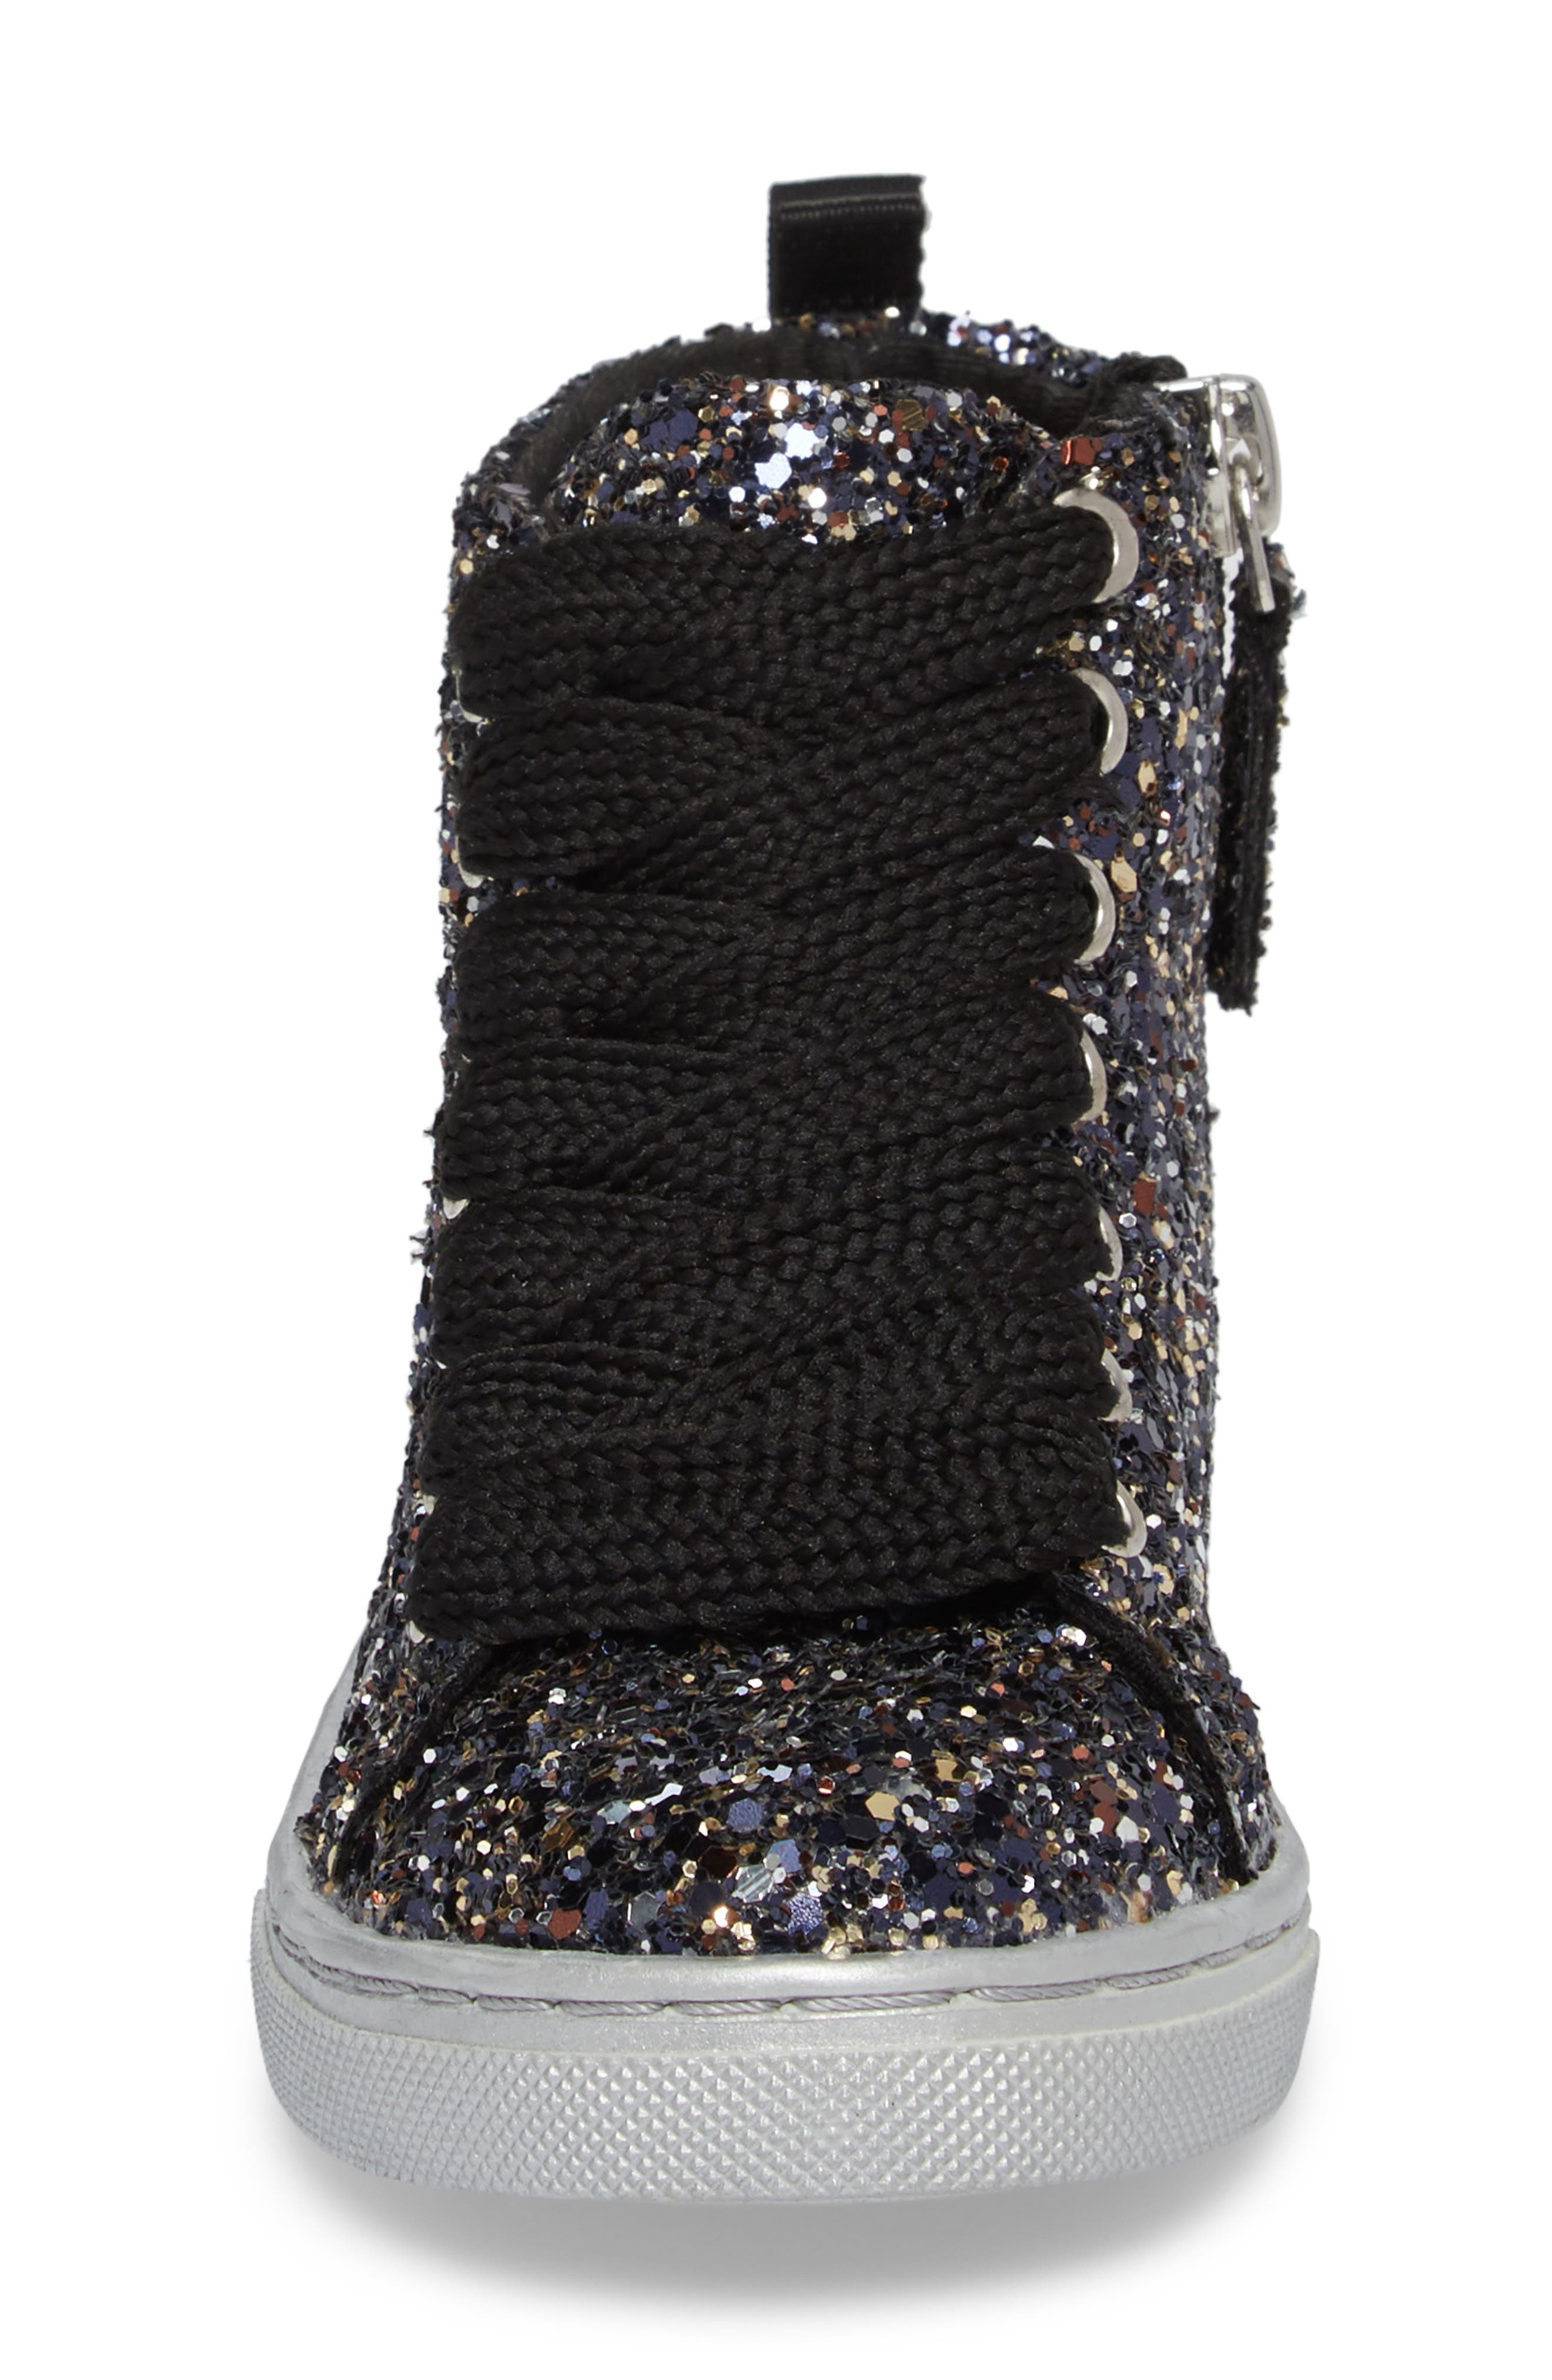 Zaine Glittery High Top Sneaker,                             Alternate thumbnail 4, color,                             001